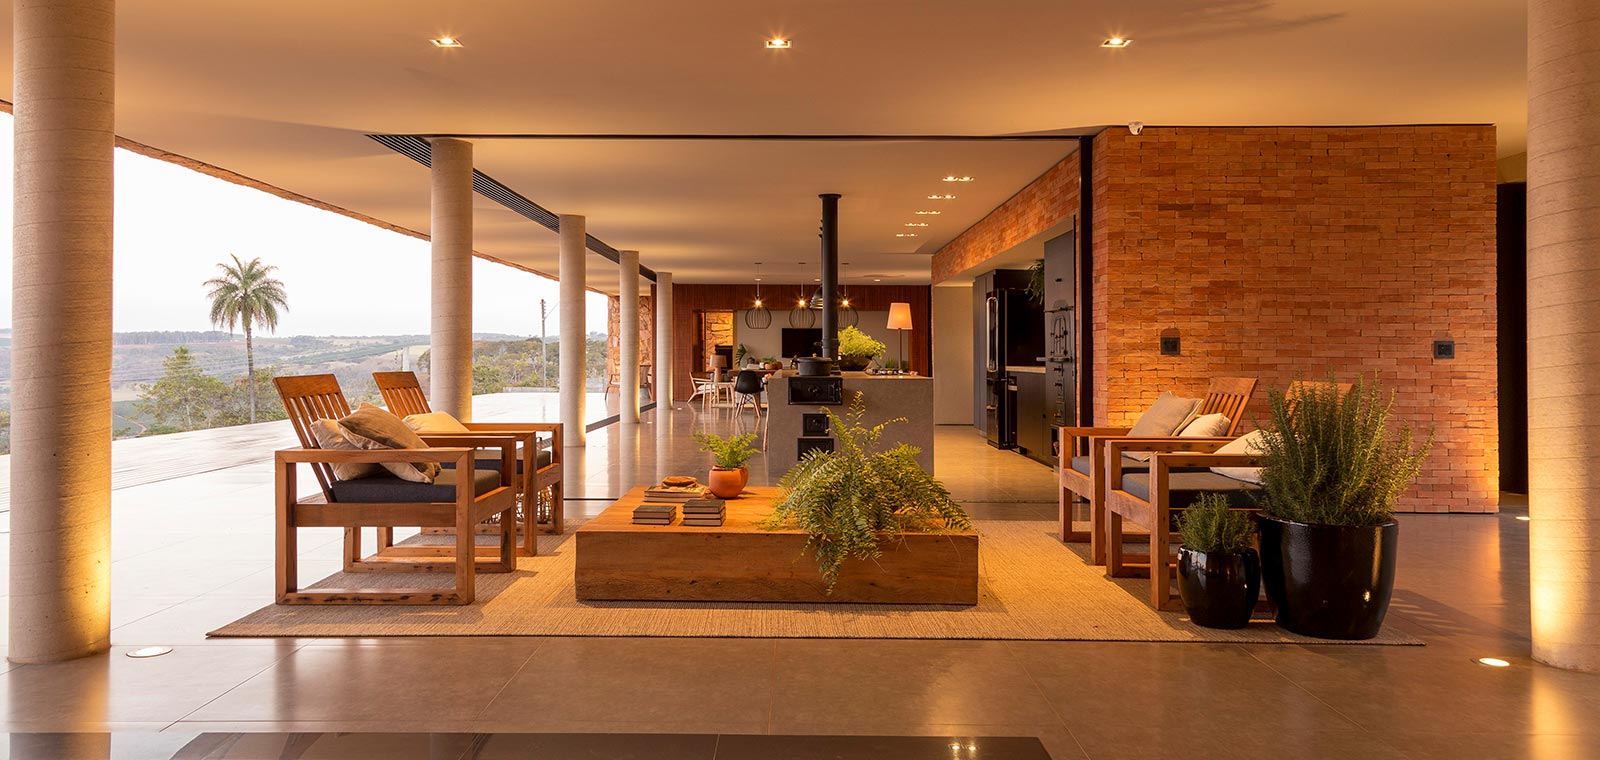 Casa Das Pedras by mf+arquitetos located in Brazil - open-plan living and kitchen area